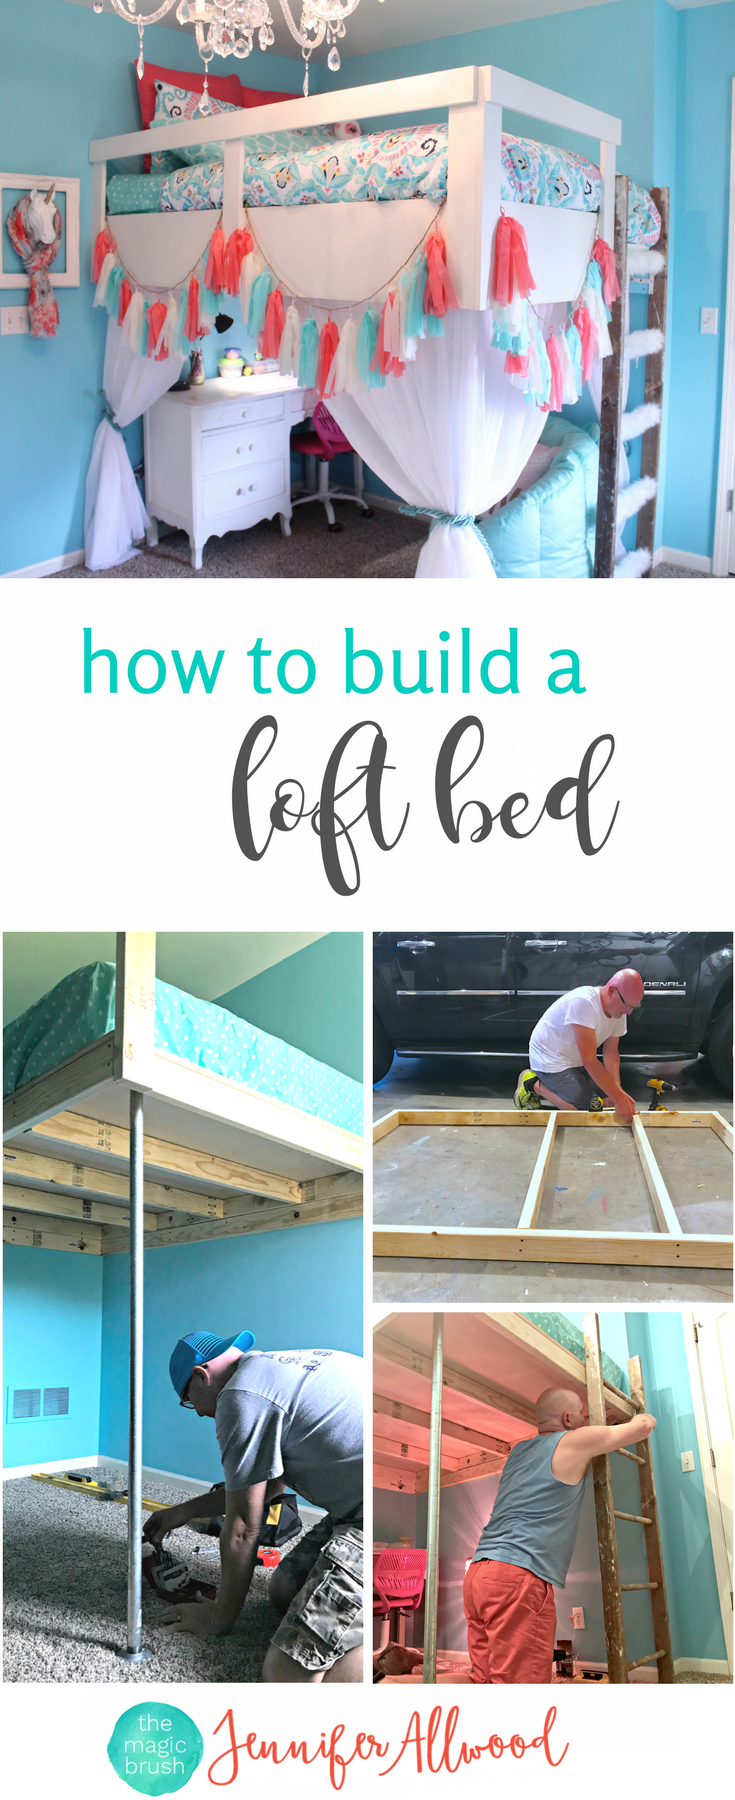 how to build bedroom furniture. How To Build A Loft Bed For Girls Bedroom By Jennifer Allwood -Tween Girl Furniture